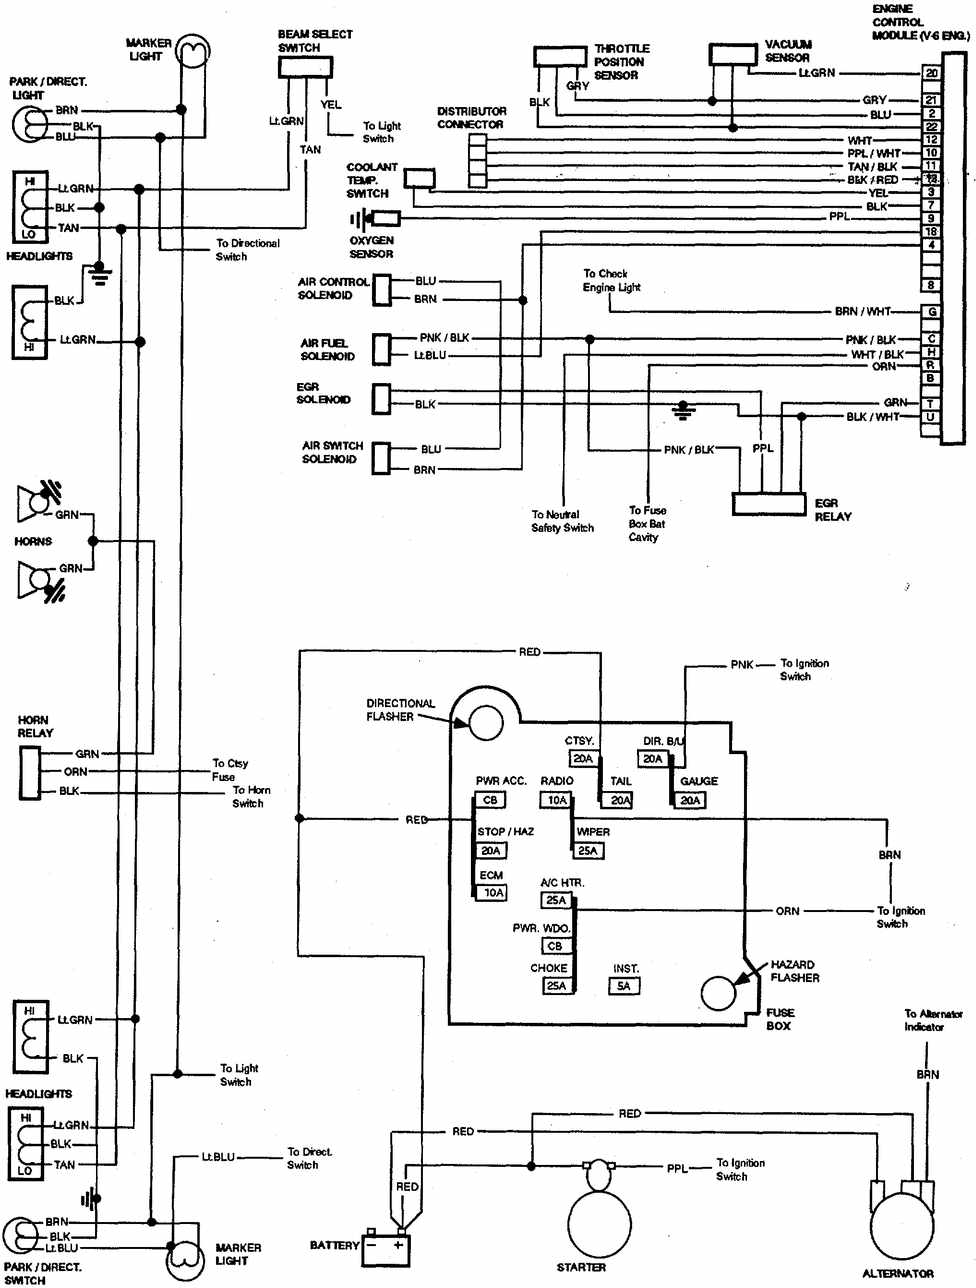 hight resolution of 1978 chevy turn signal wiring diagram detailed schematics diagram rh antonartgallery com 1975 chevy caprice wiring